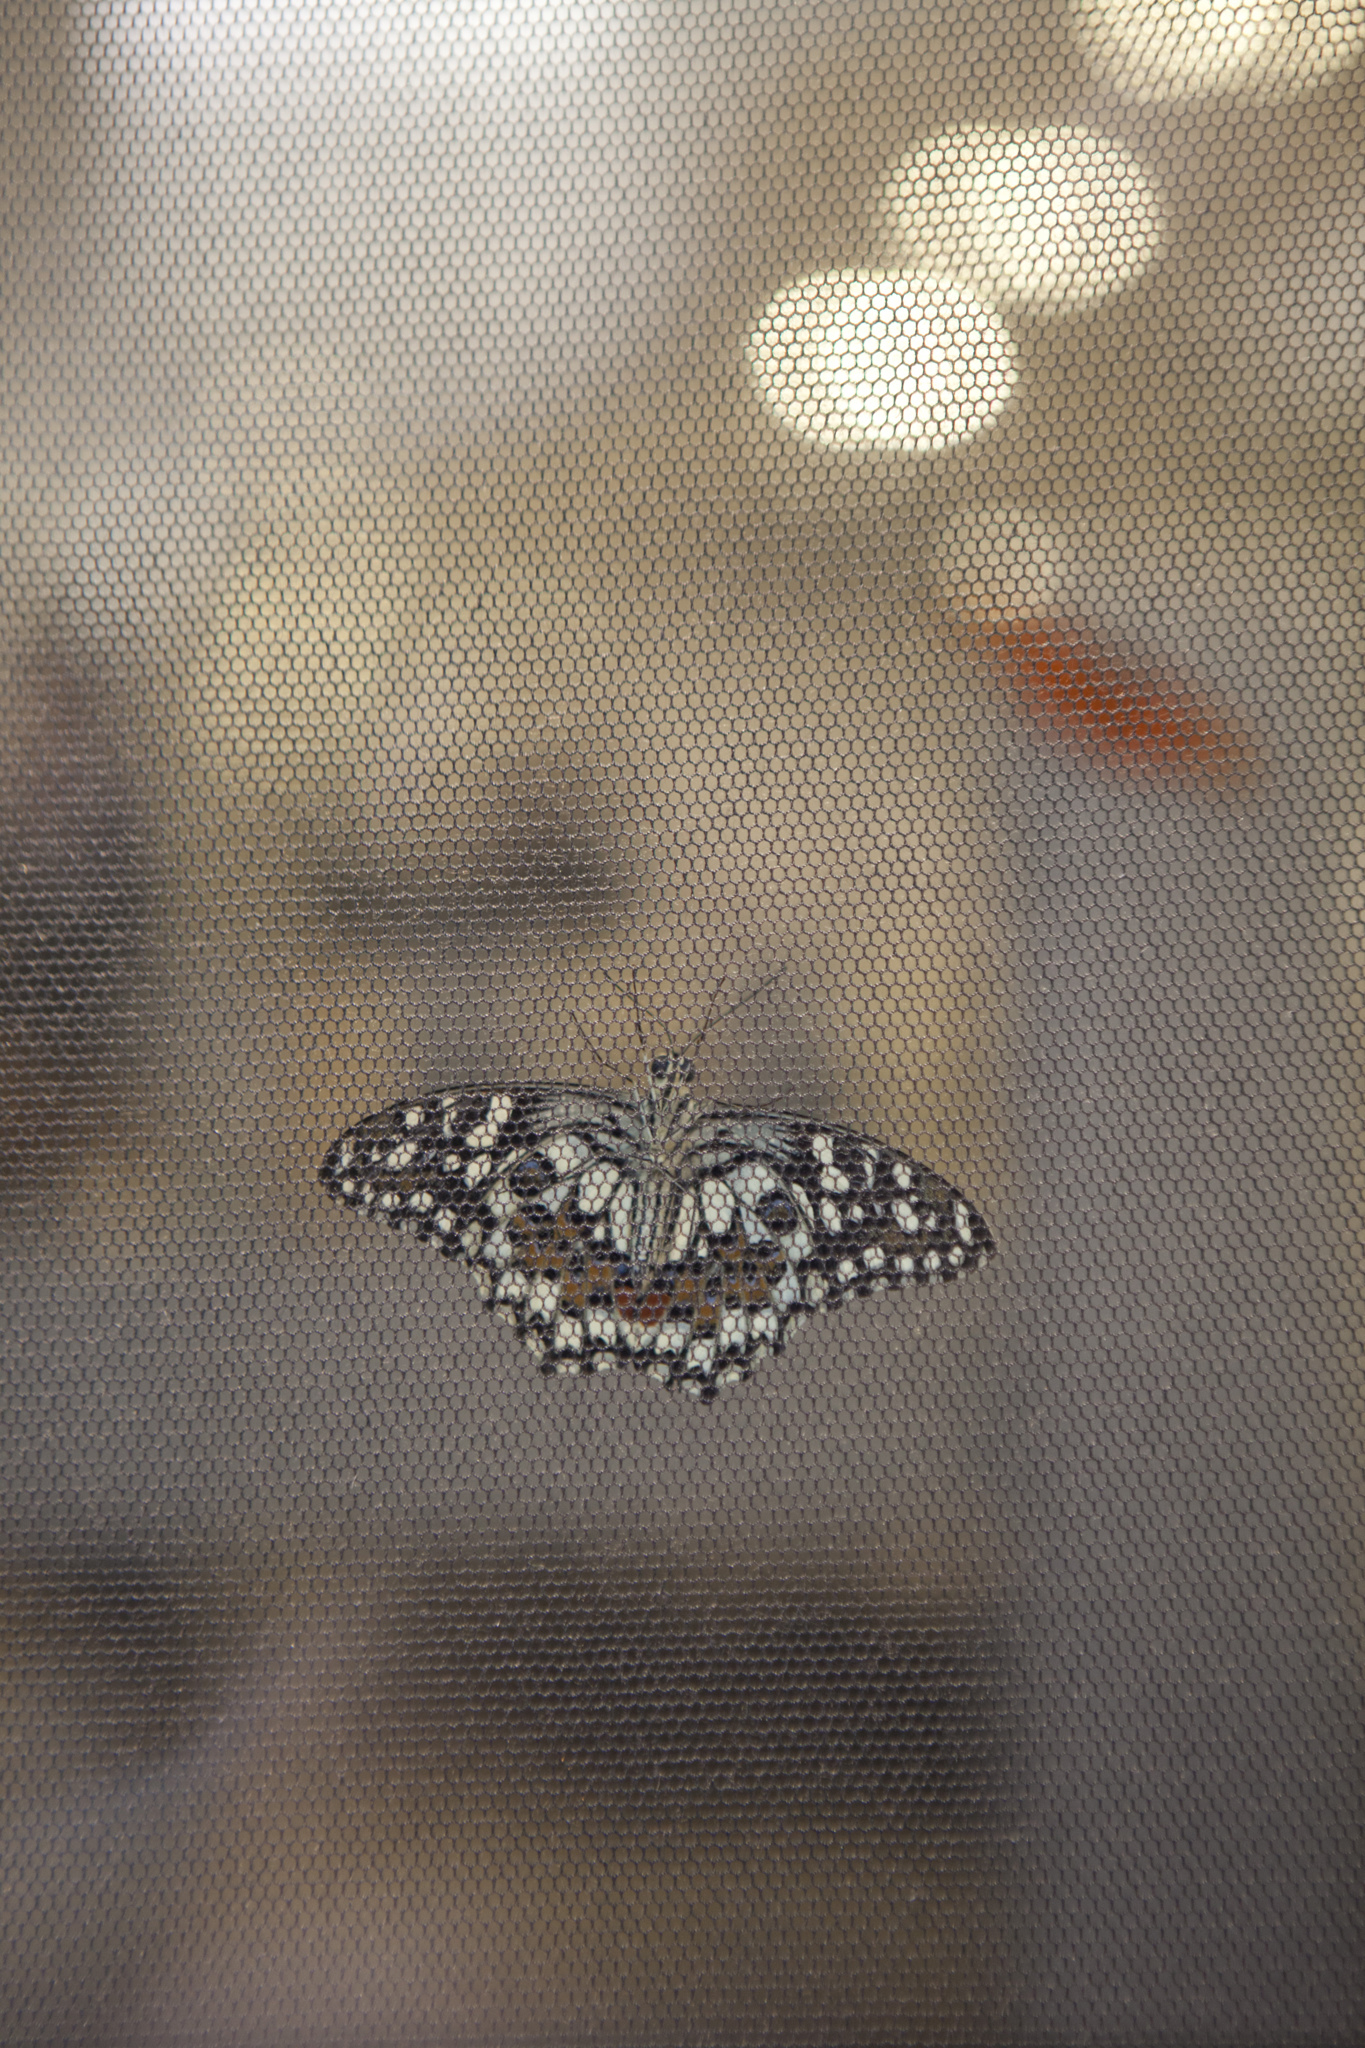 A butterfly from the storeÕs window display.